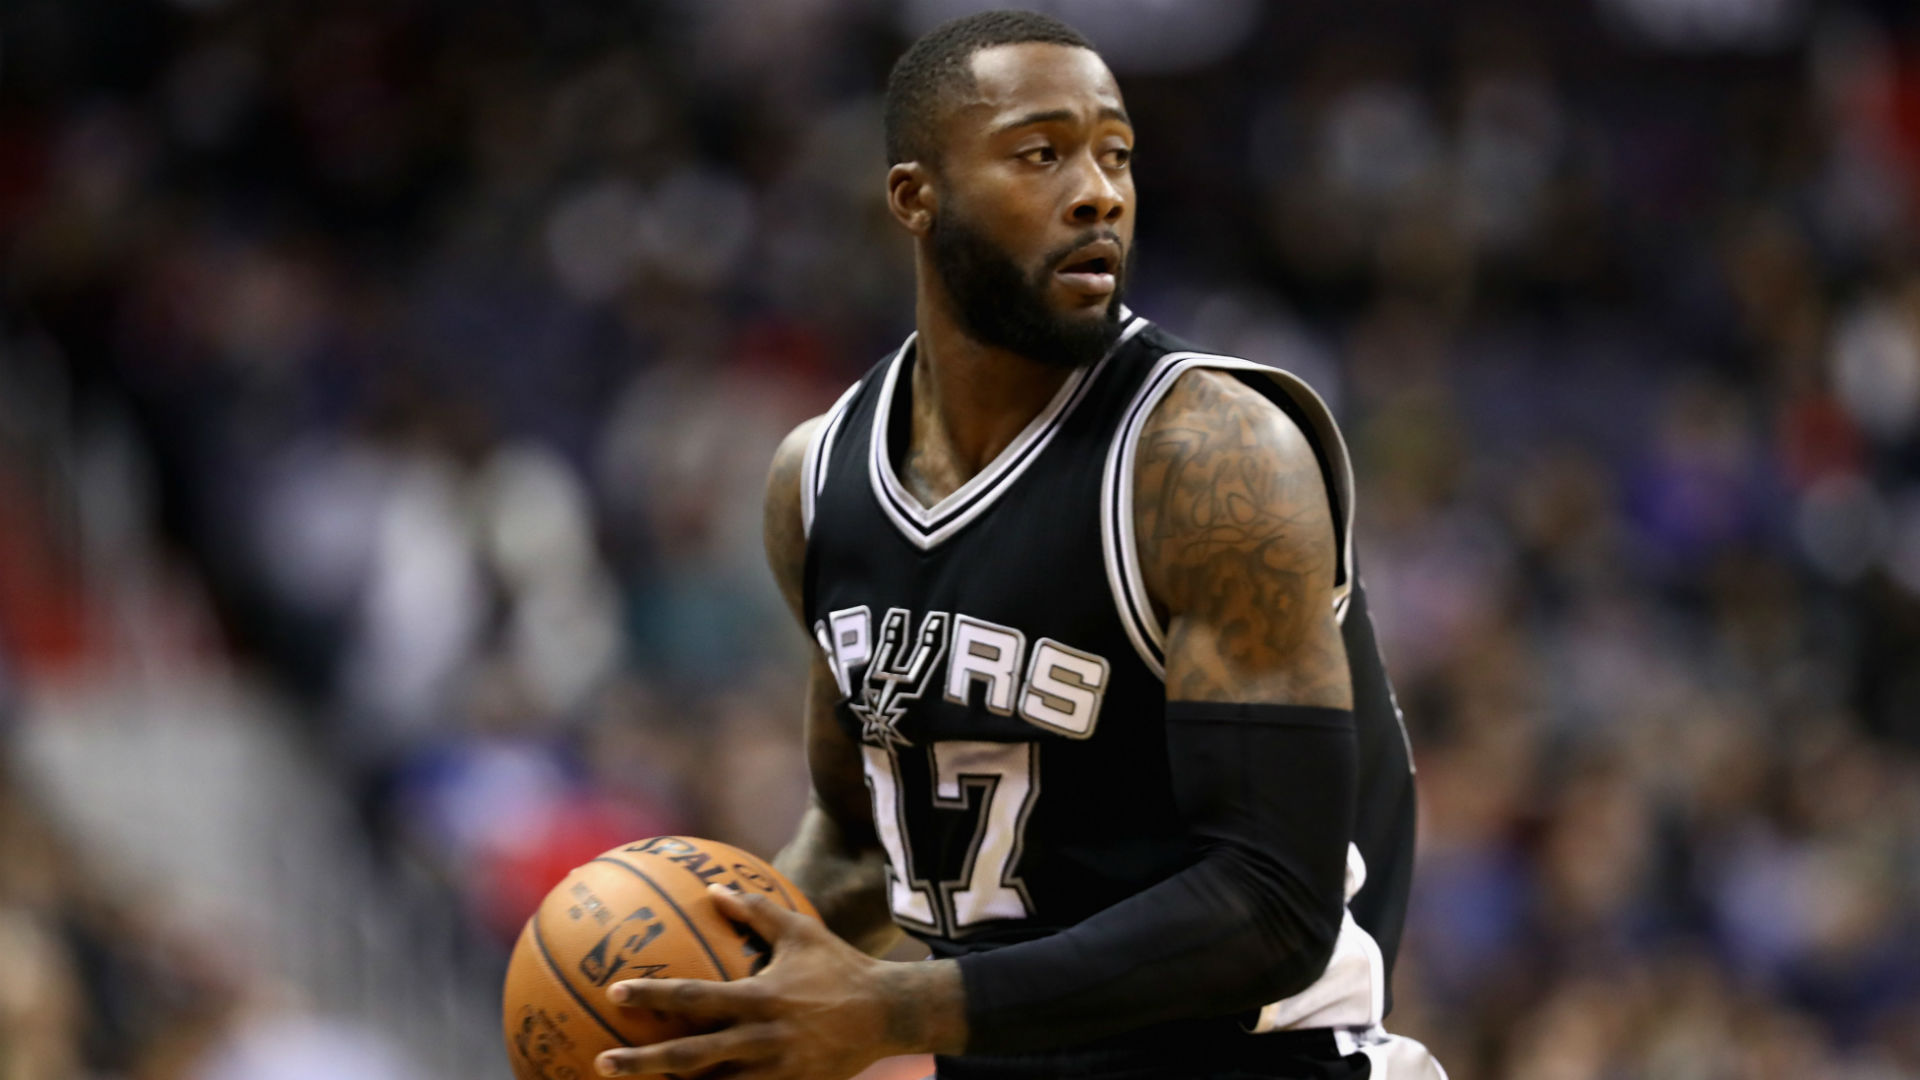 Spurs renounce rights to Jonathon Simmons, making him unrestricted free agent